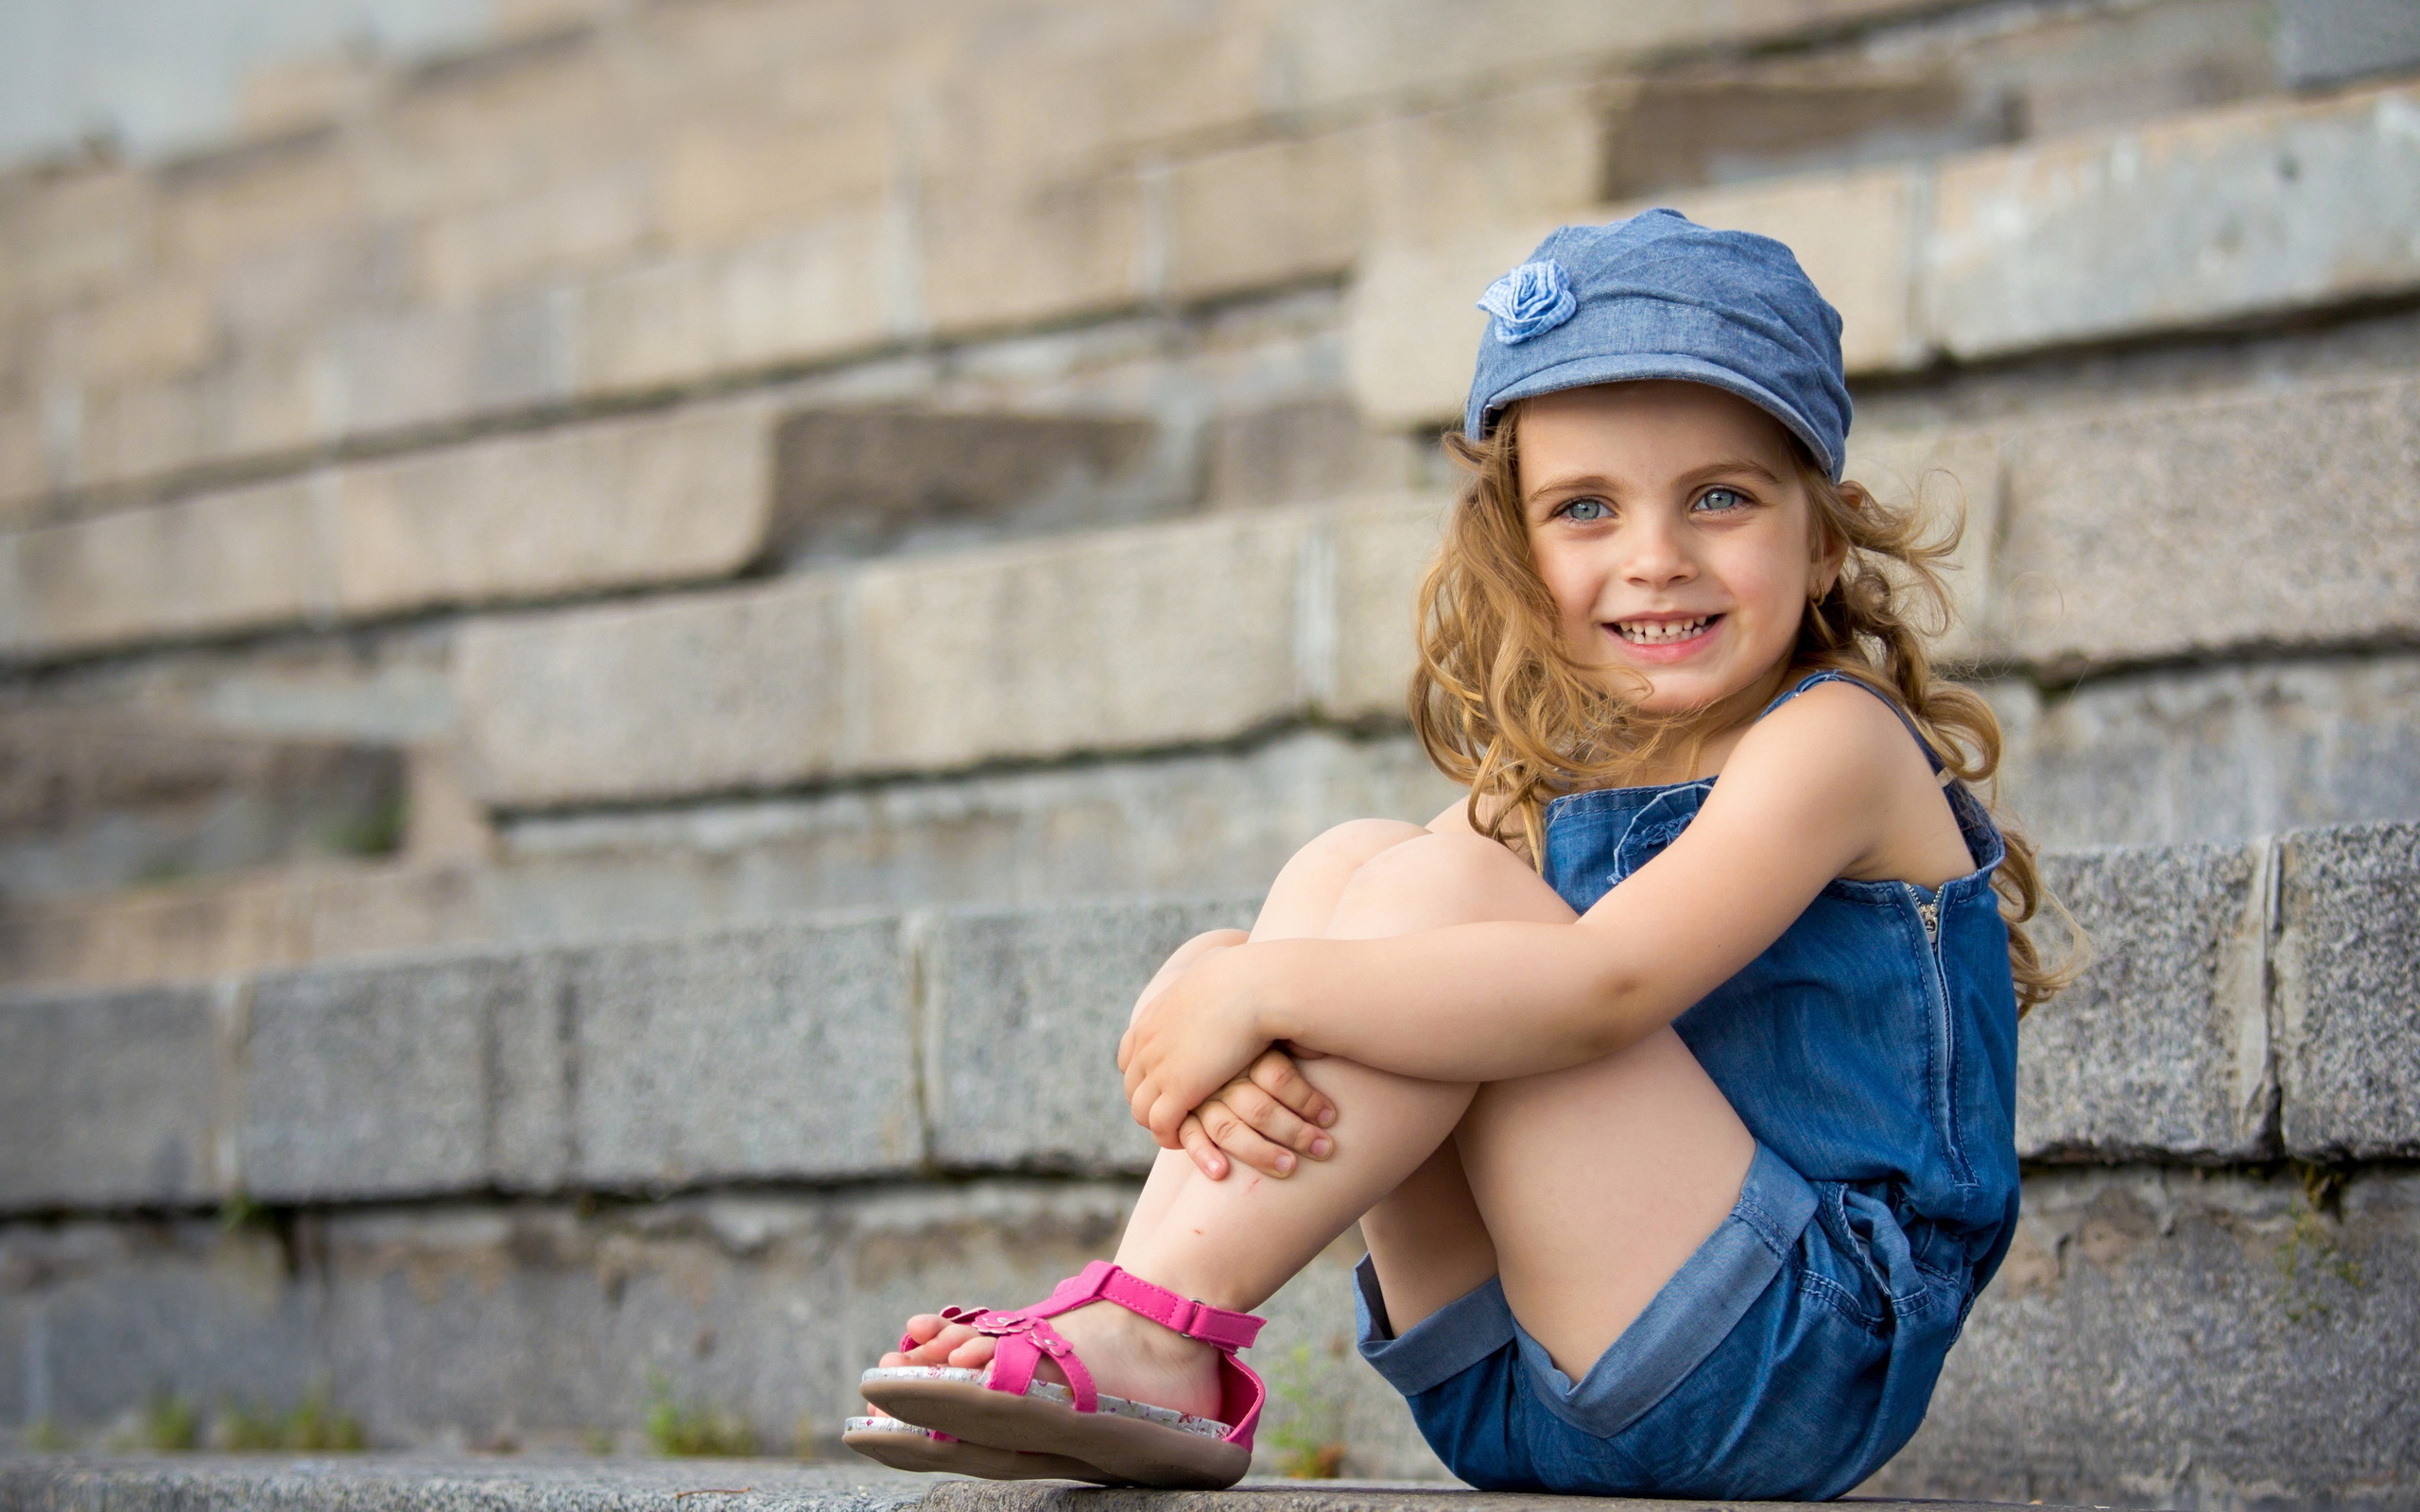 Child hd wallpaper background image 2560x1600 id - Cute little girl pic hd ...